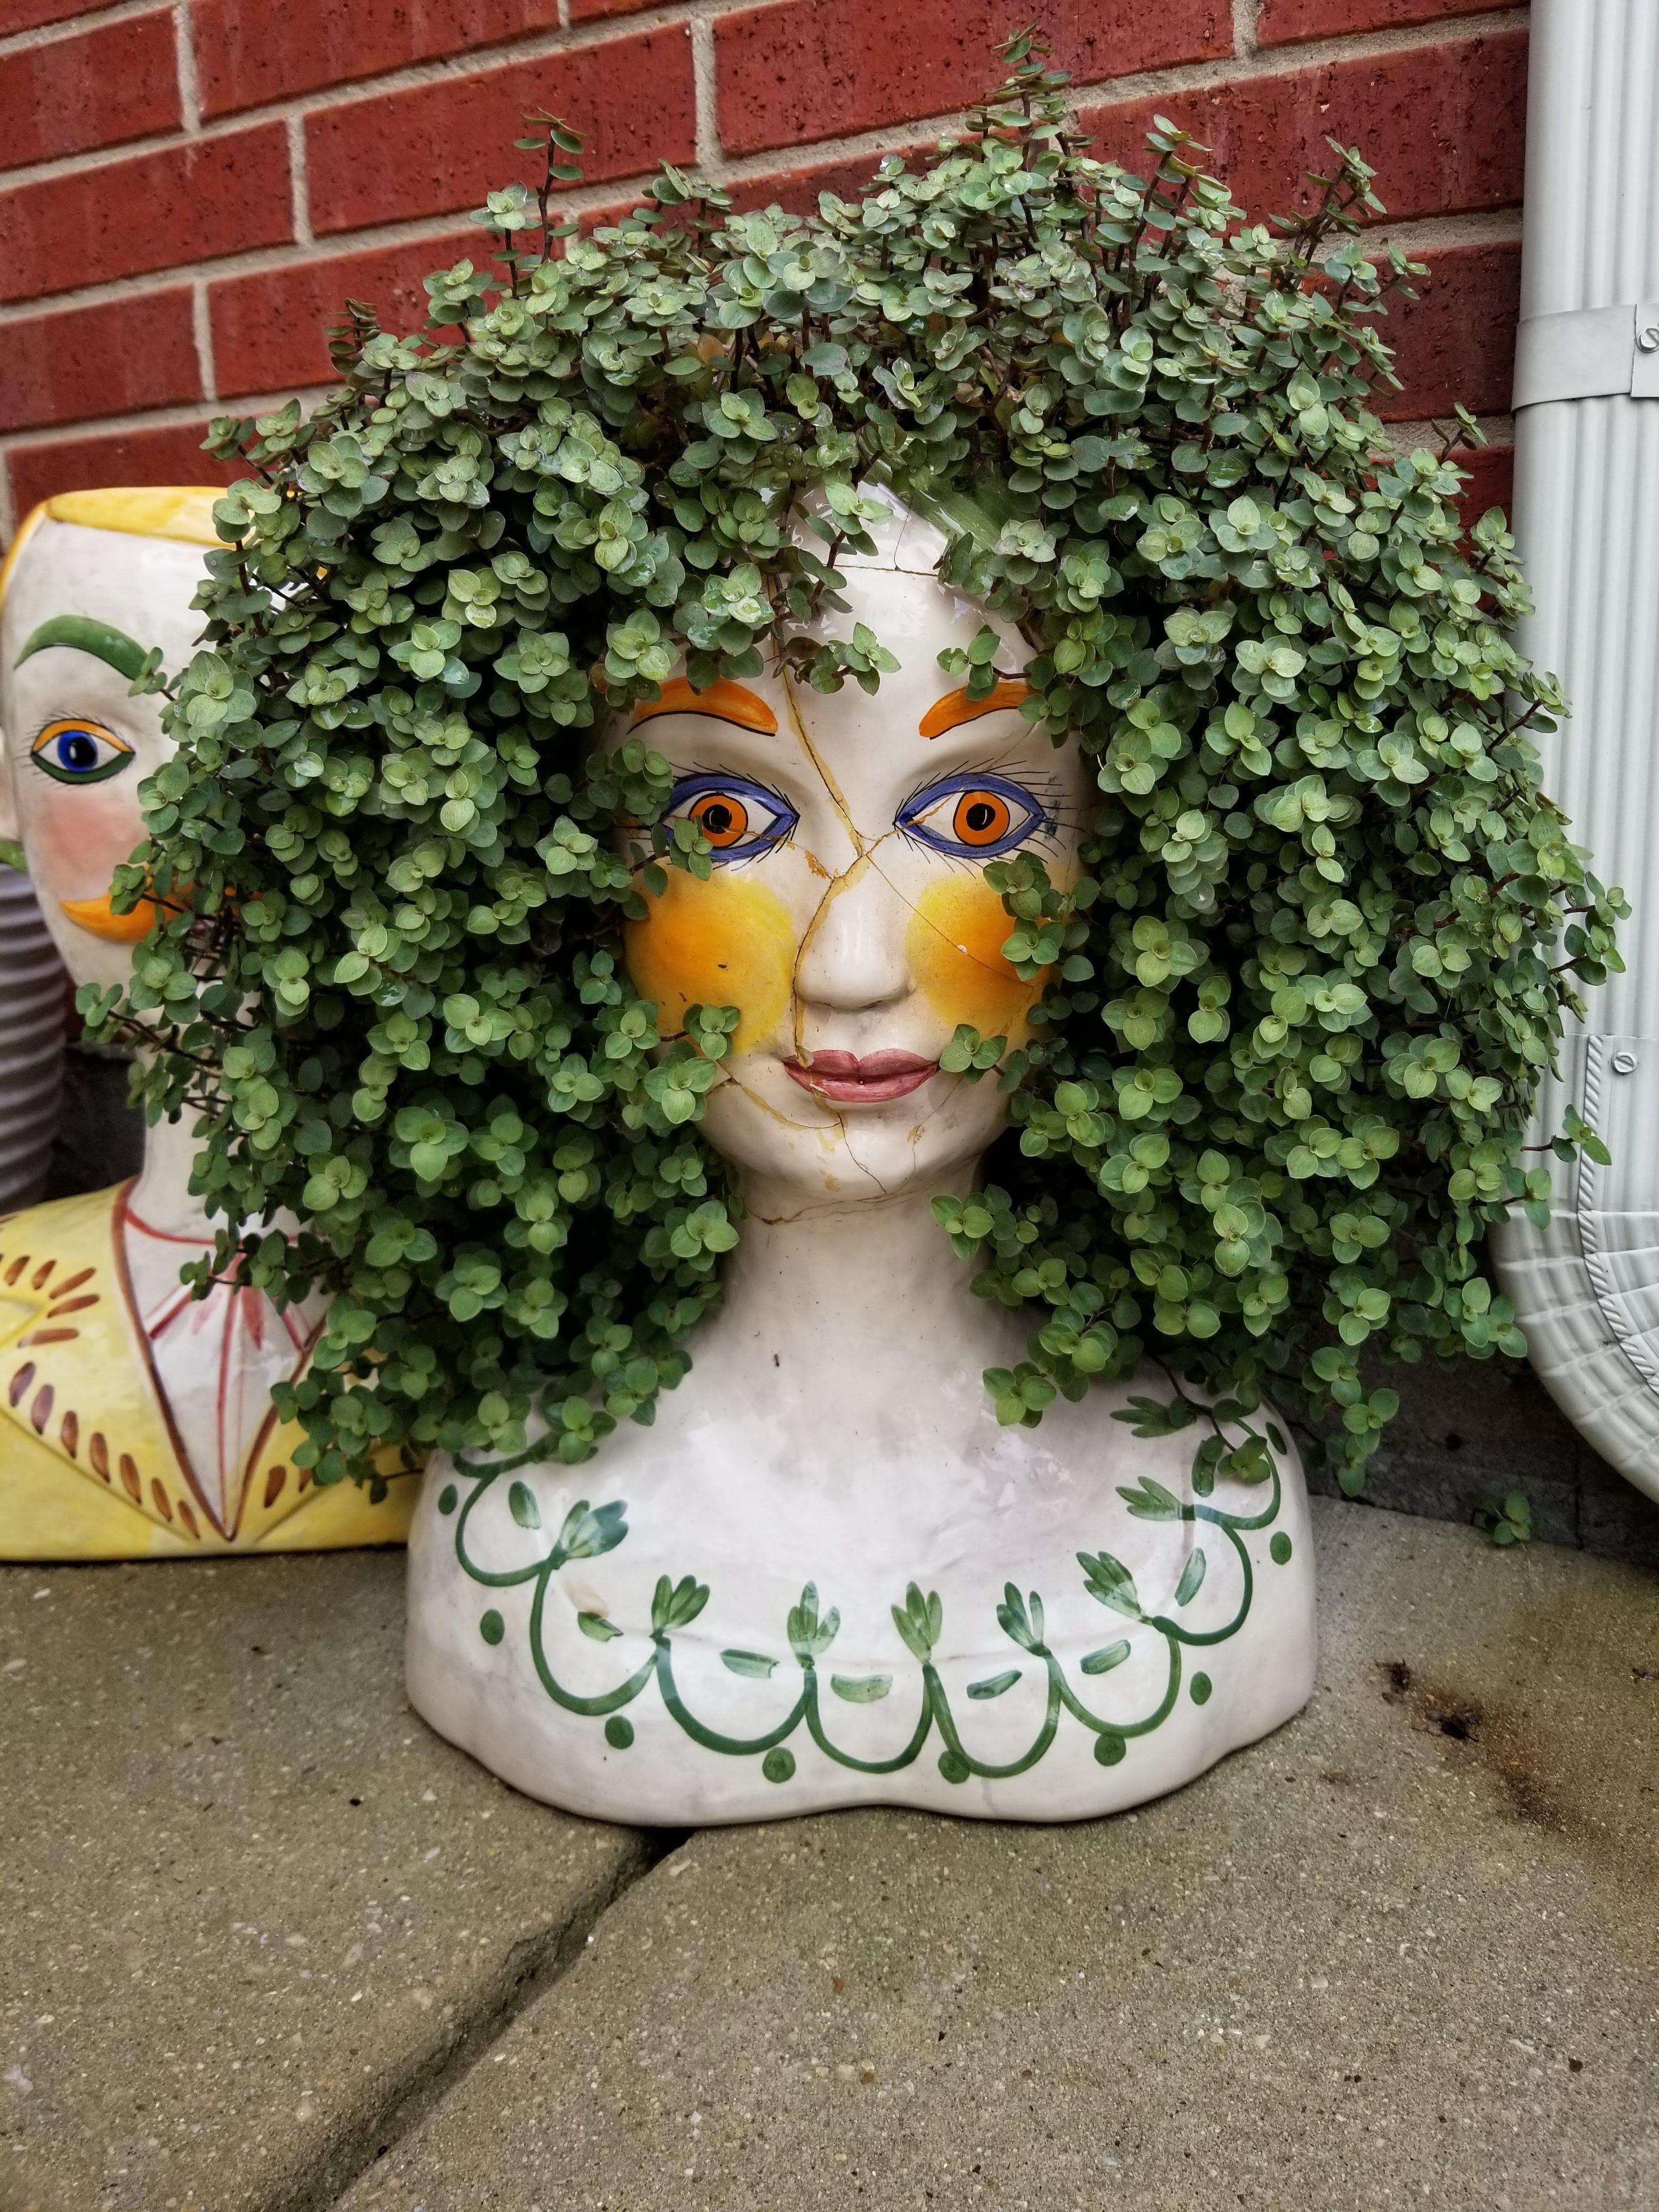 Too cool!! Wish I had this planter!